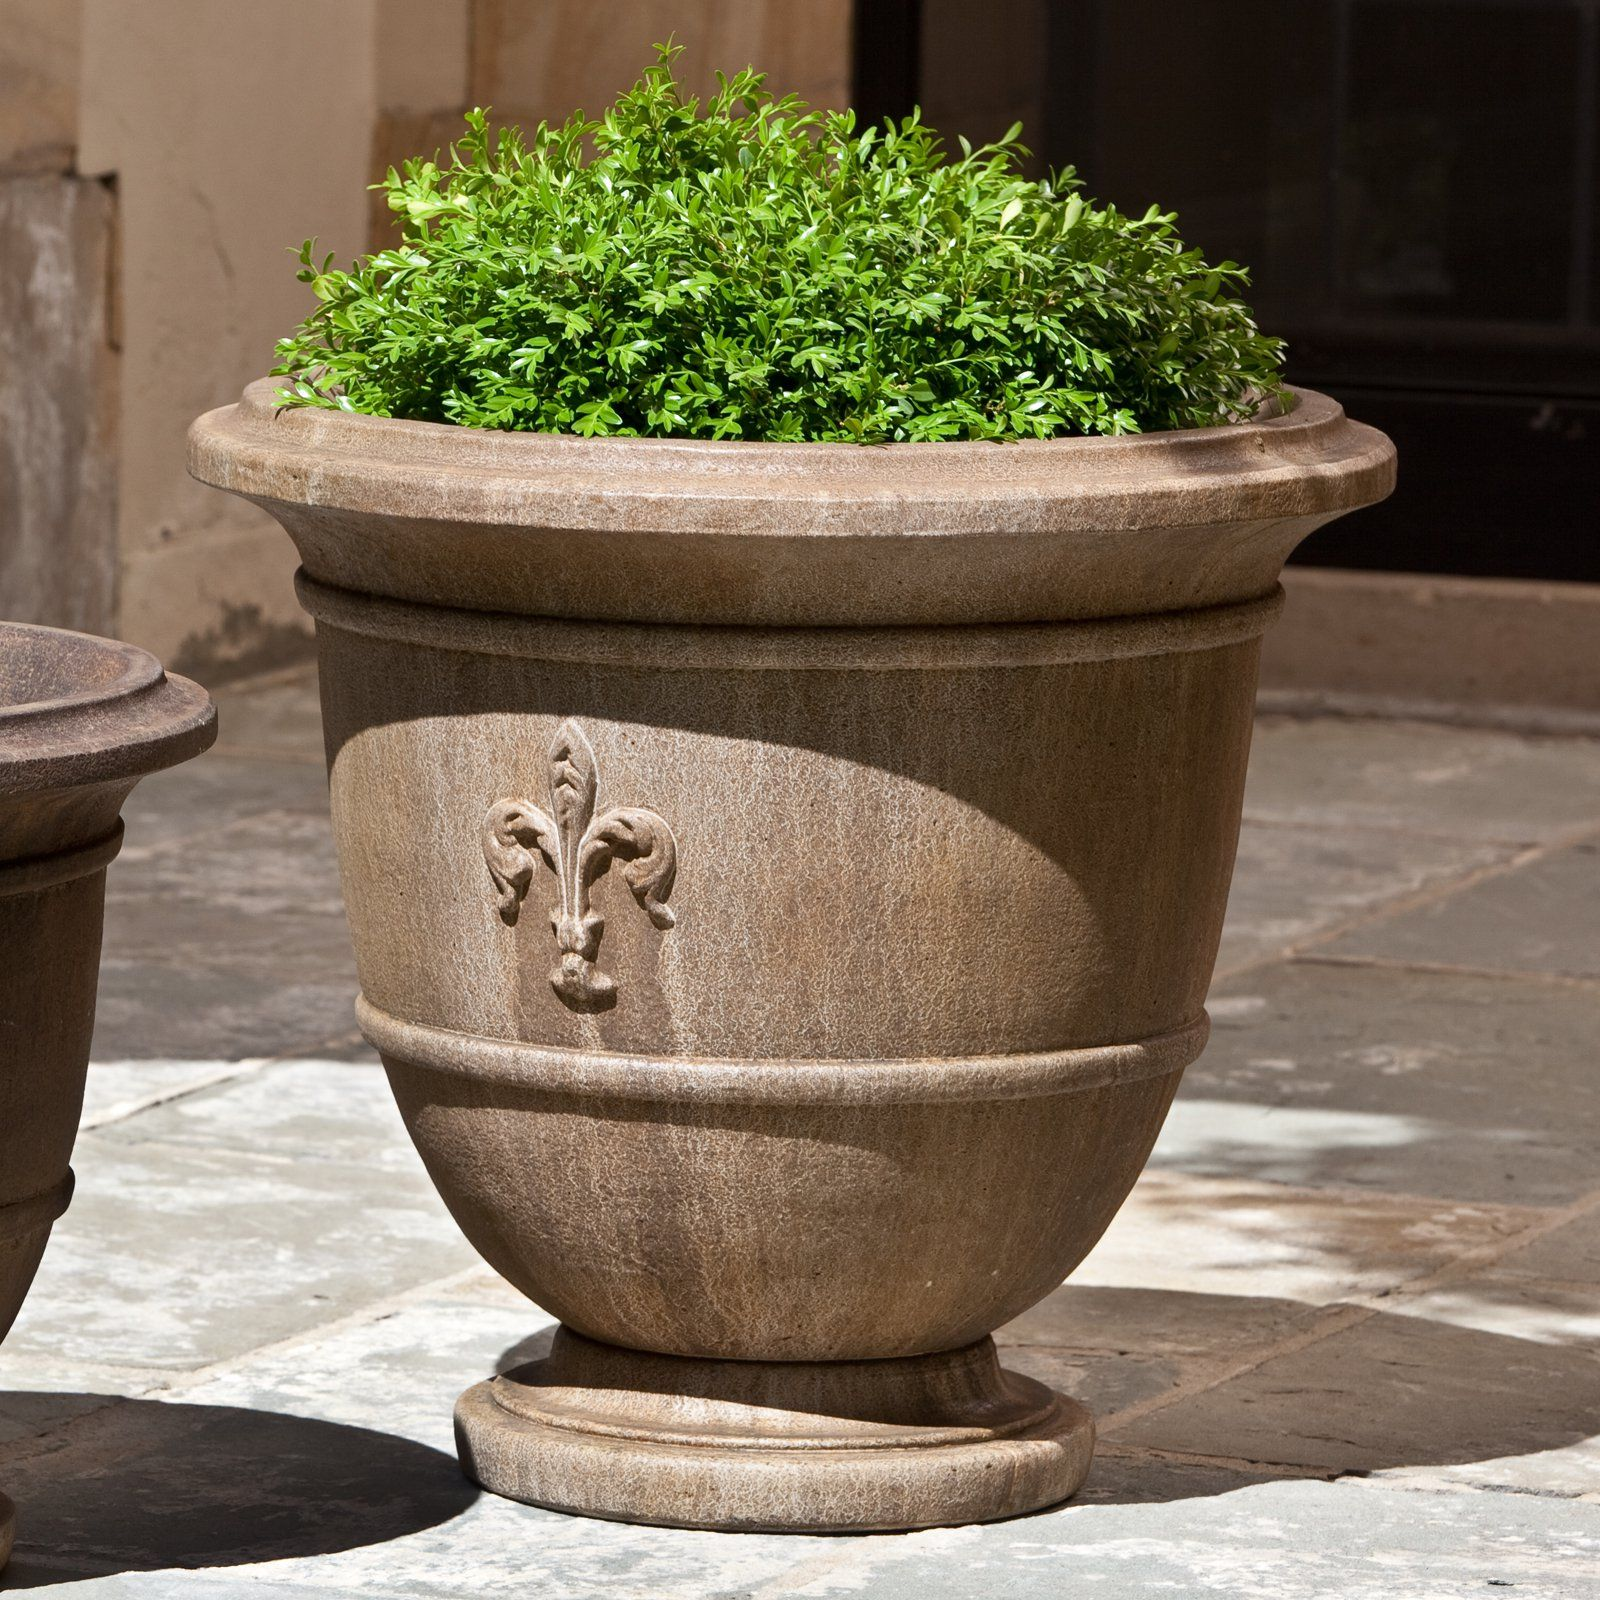 flanking outdoor the them what weekend one want garden and or each urns planter doing spring arbor shed elevated pin planters of i m side in this urn doors on my two pinterest